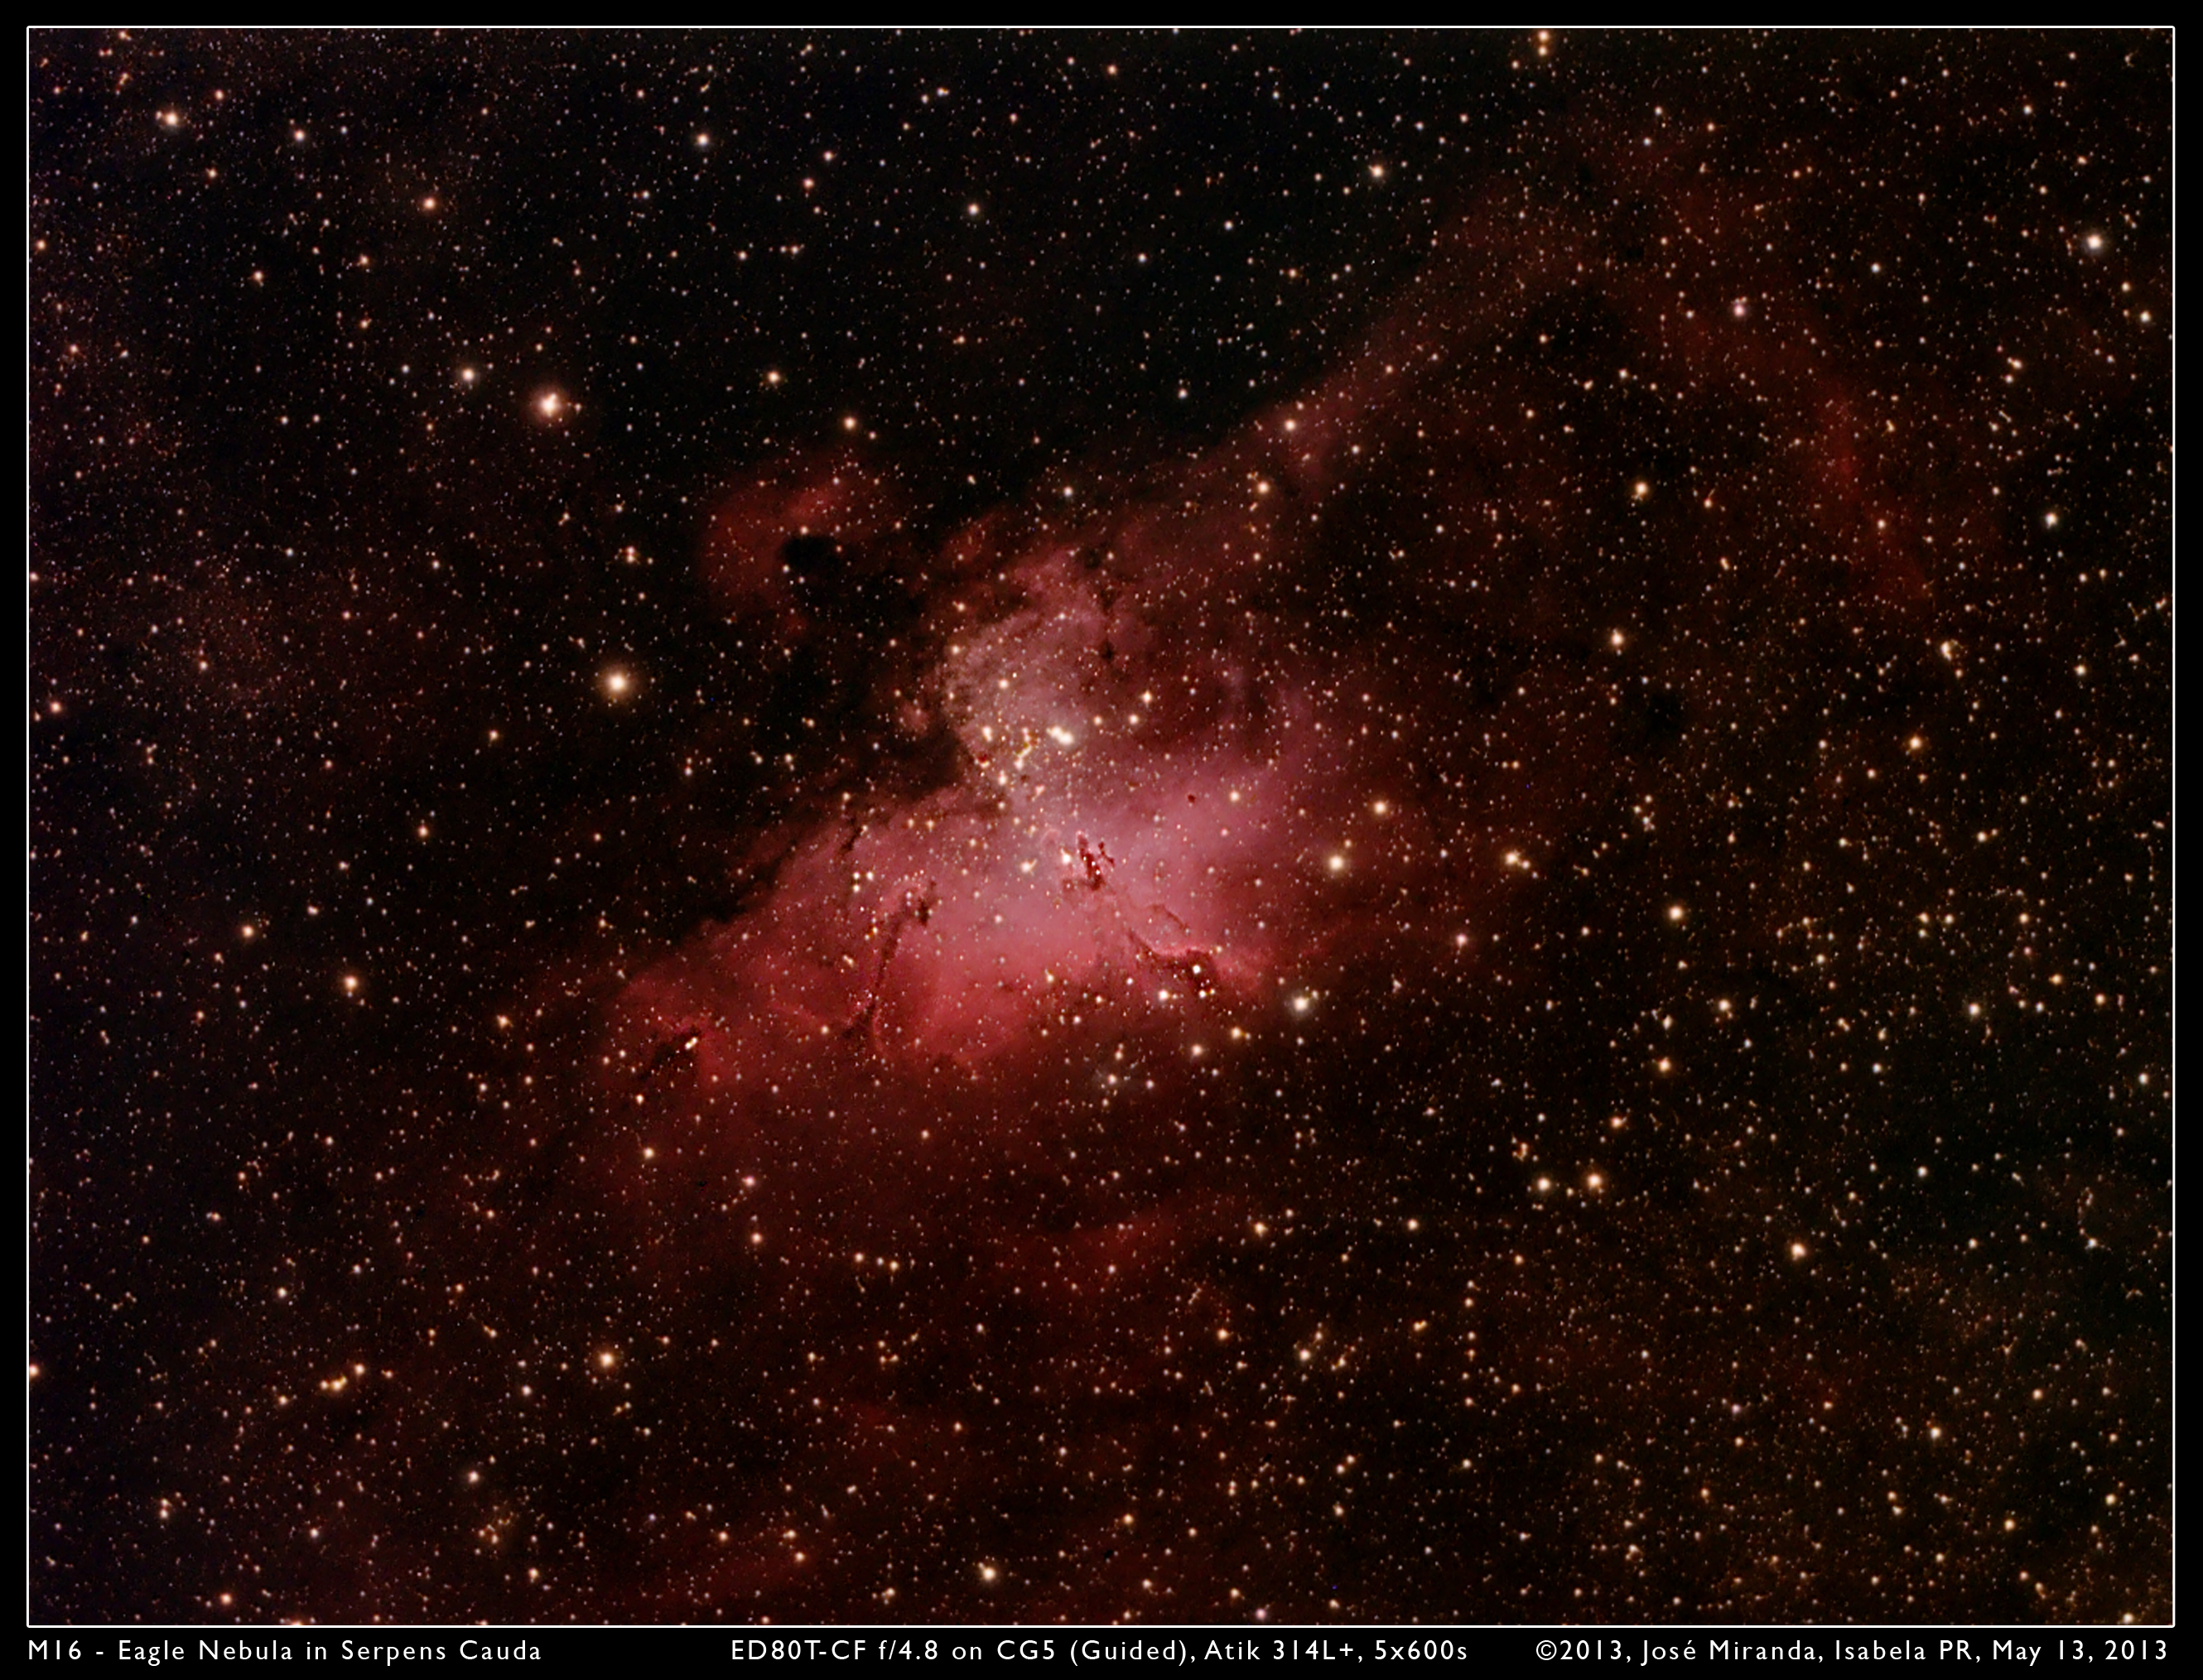 M16 - Eagle Nebula in Serpens Cauda